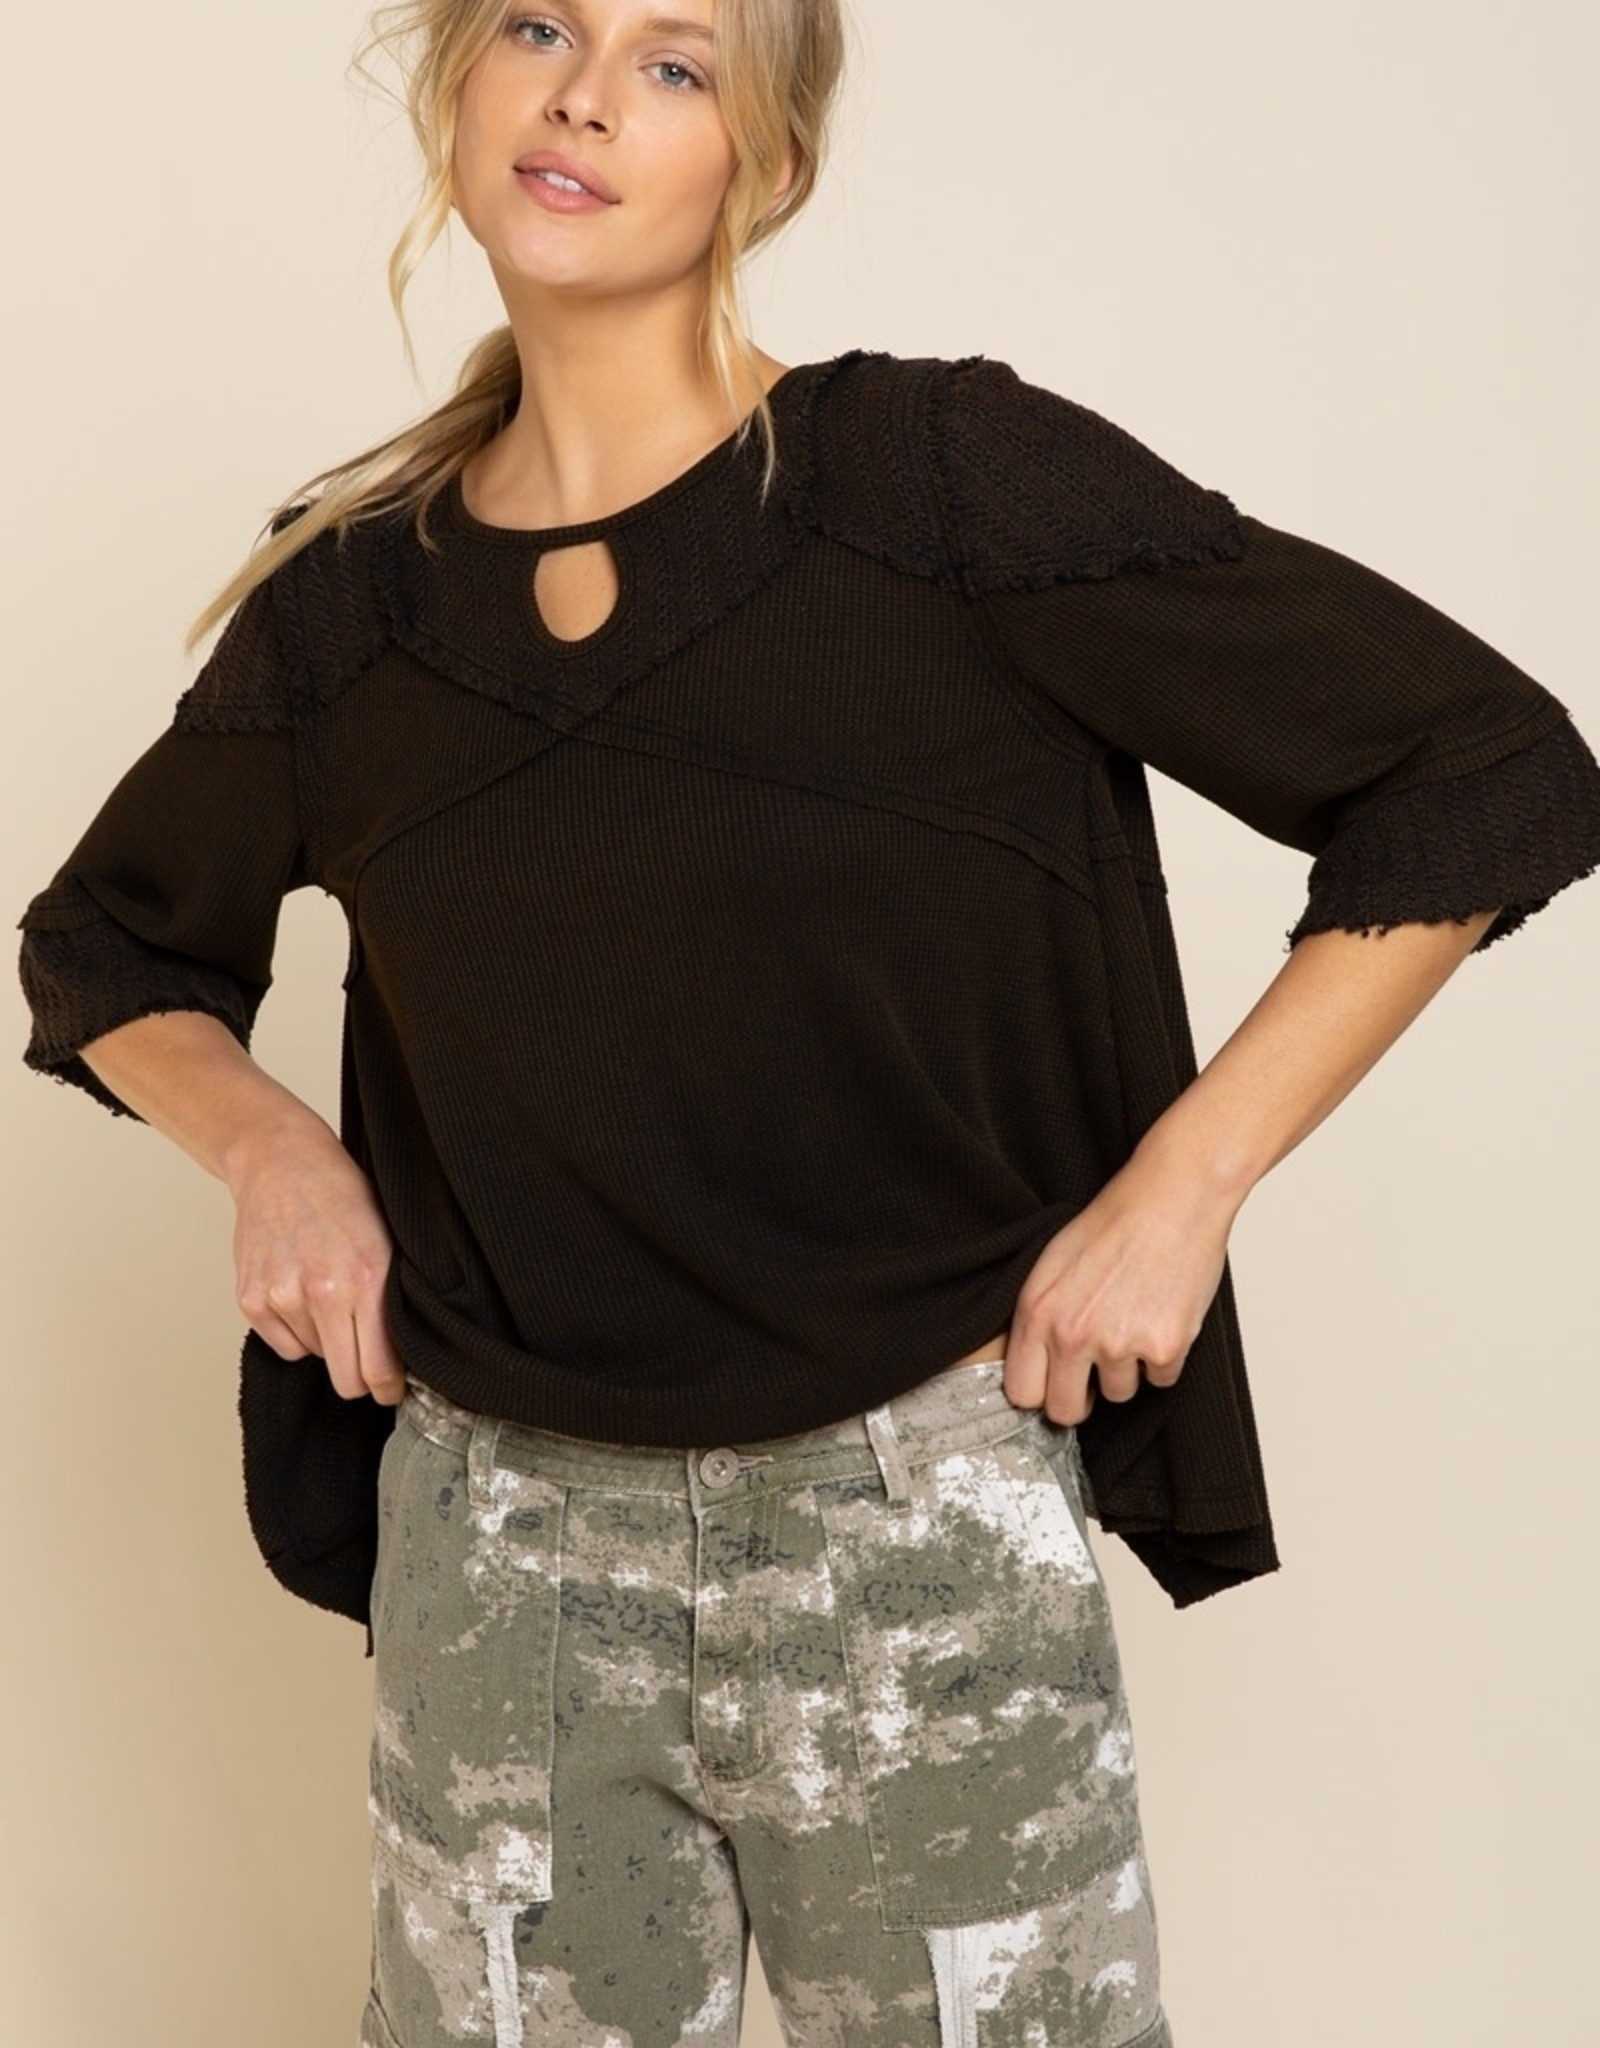 POL Clothing Waffle Knit Top